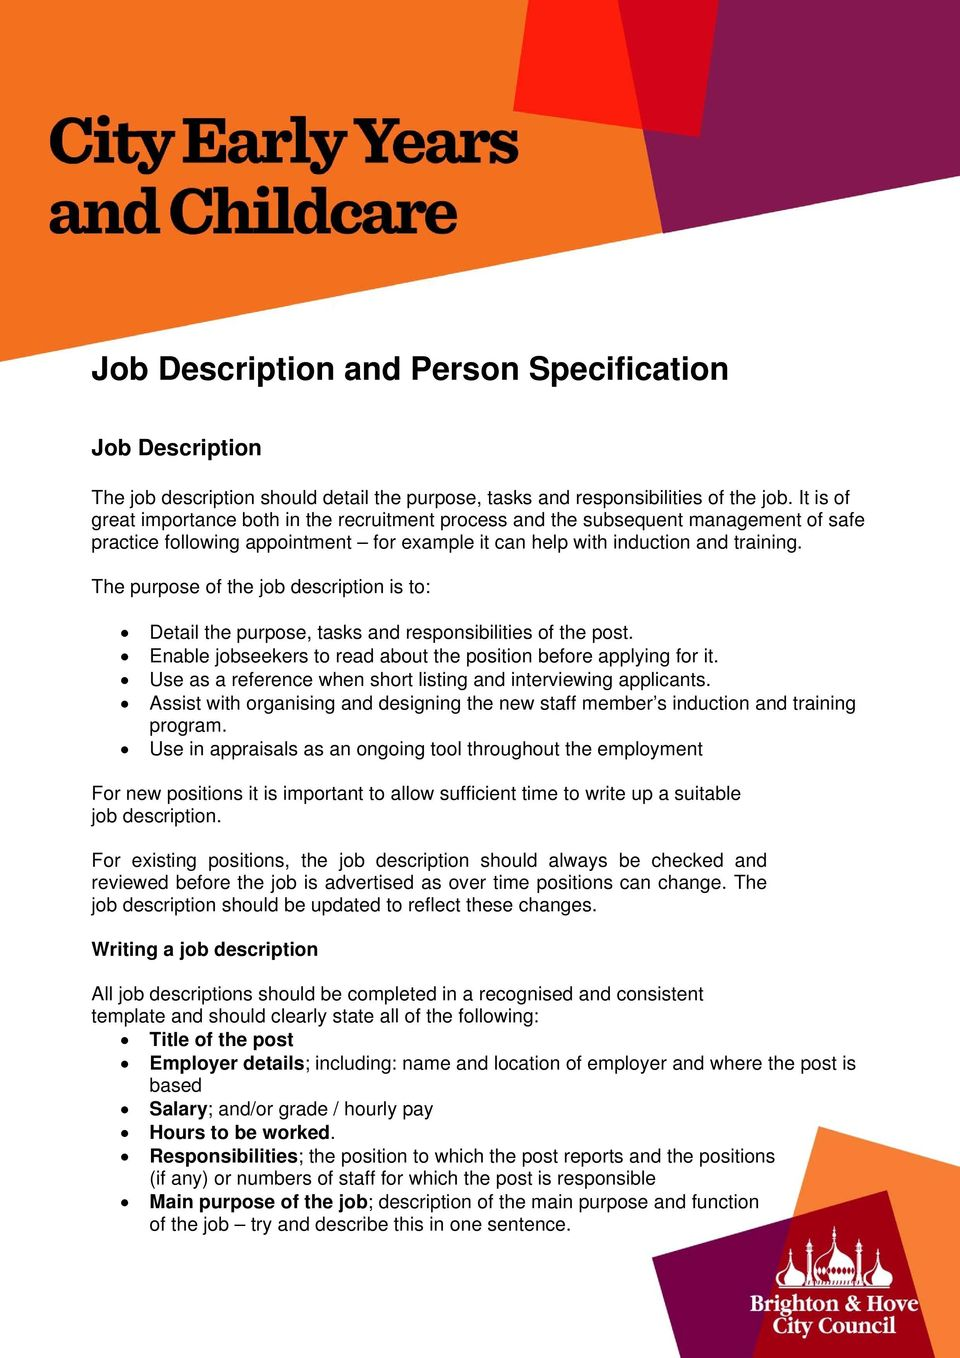 The purpose of the job description is to: Detail the purpose, tasks and responsibilities of the post. Enable jobseekers to read about the position before applying for it.